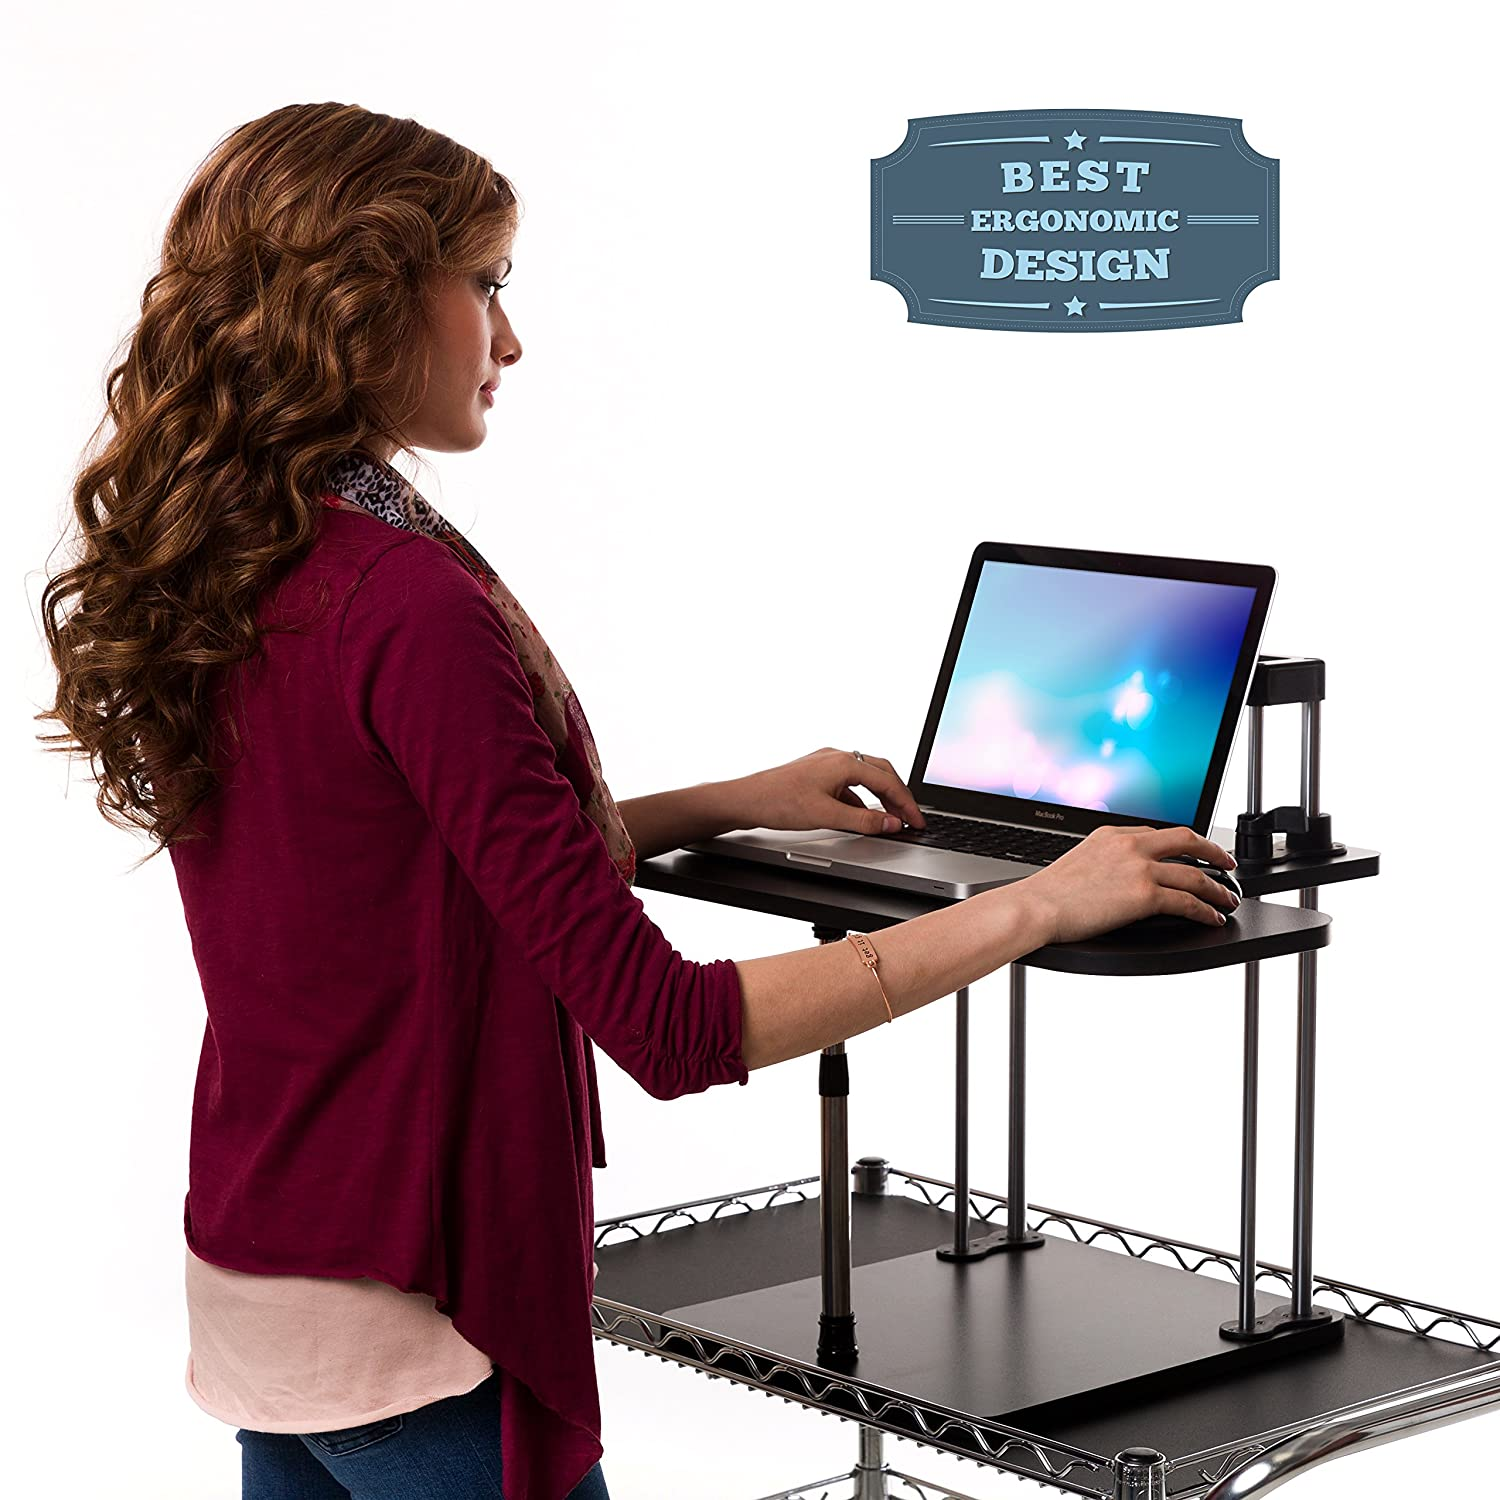 htm locus desk adjustable upright a standup p focal standing fsd